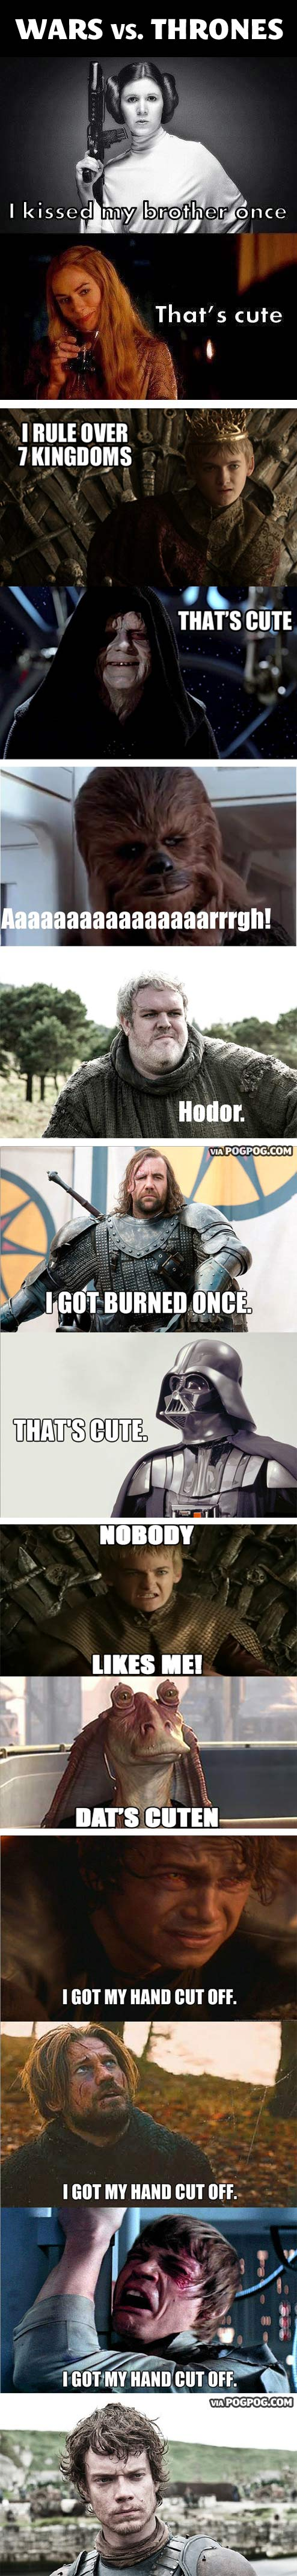 funny-pictures-star-wars-game-thrones